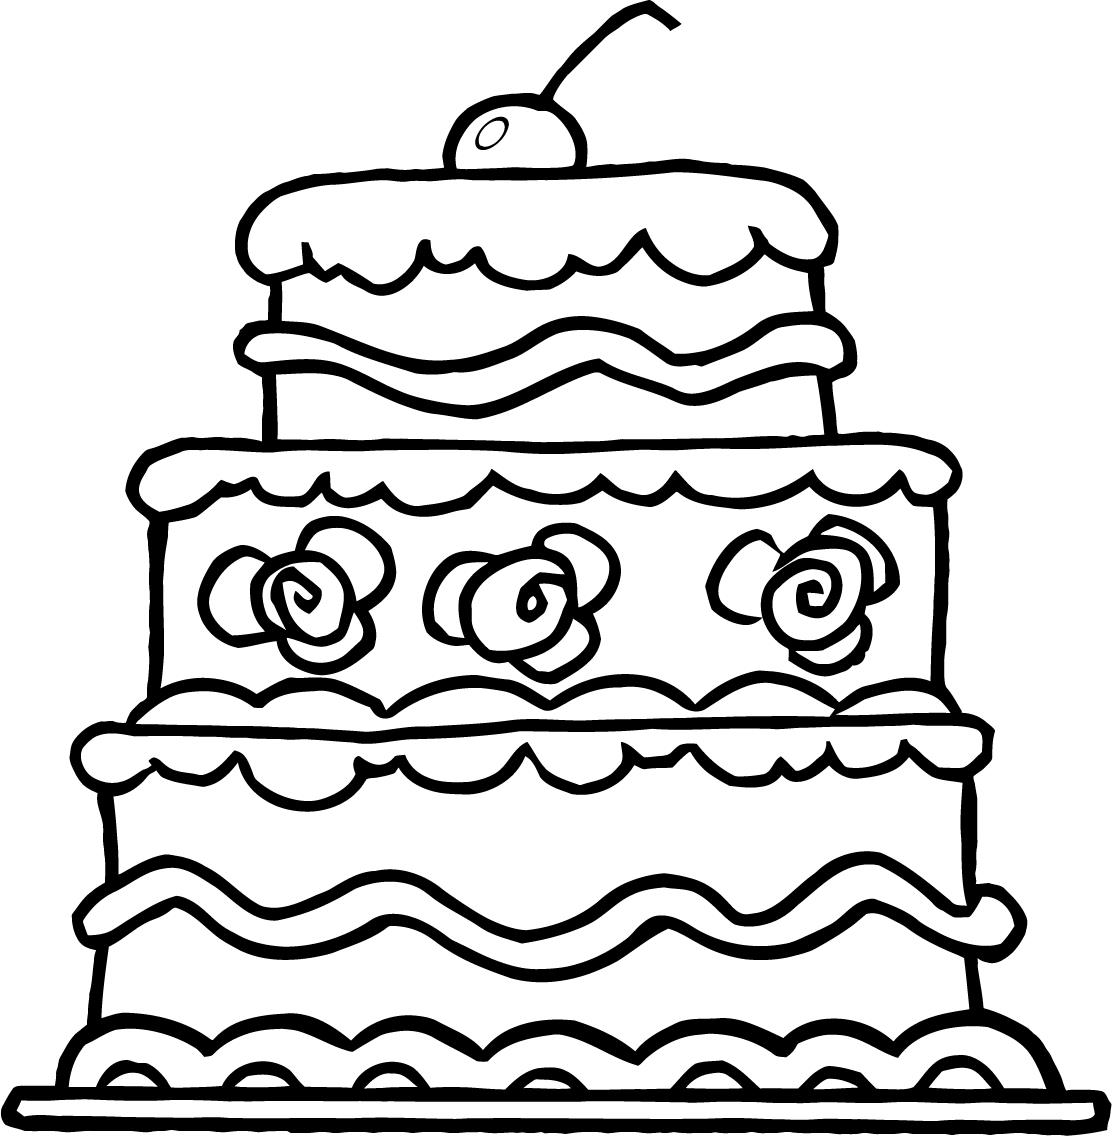 Drawing Cake Colour Cake Coloring Pages To Download And Print For Free